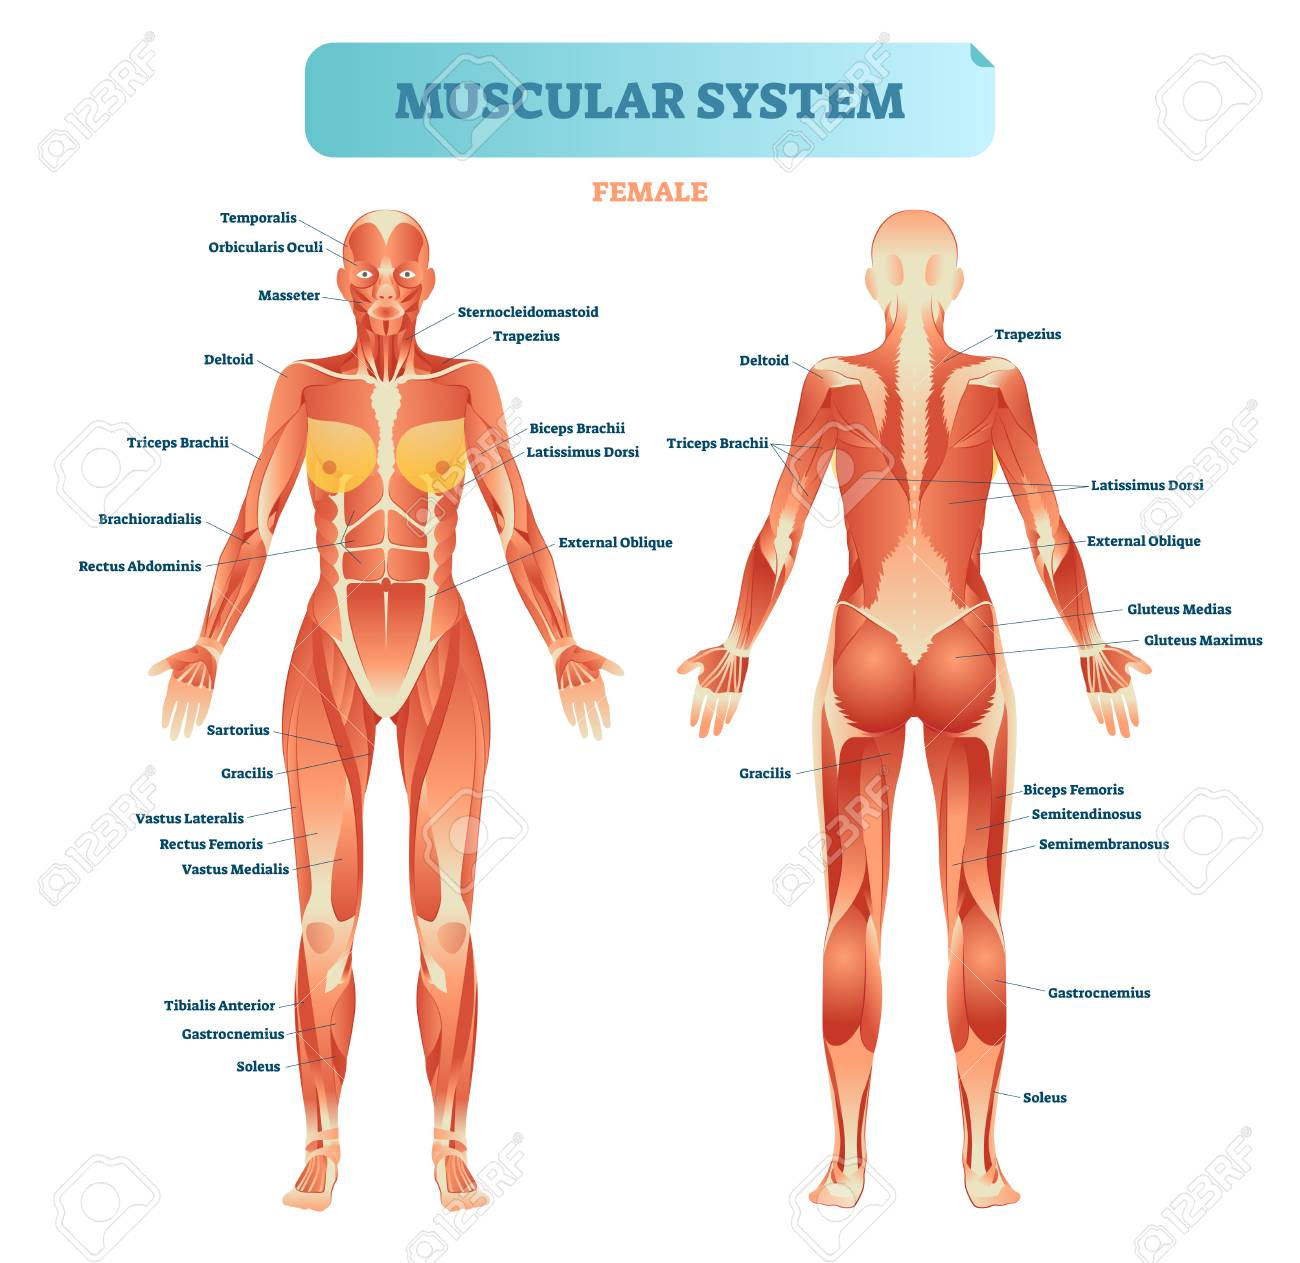 Female Muscular System, Full Anatomical Body Diagram With Muscle ...